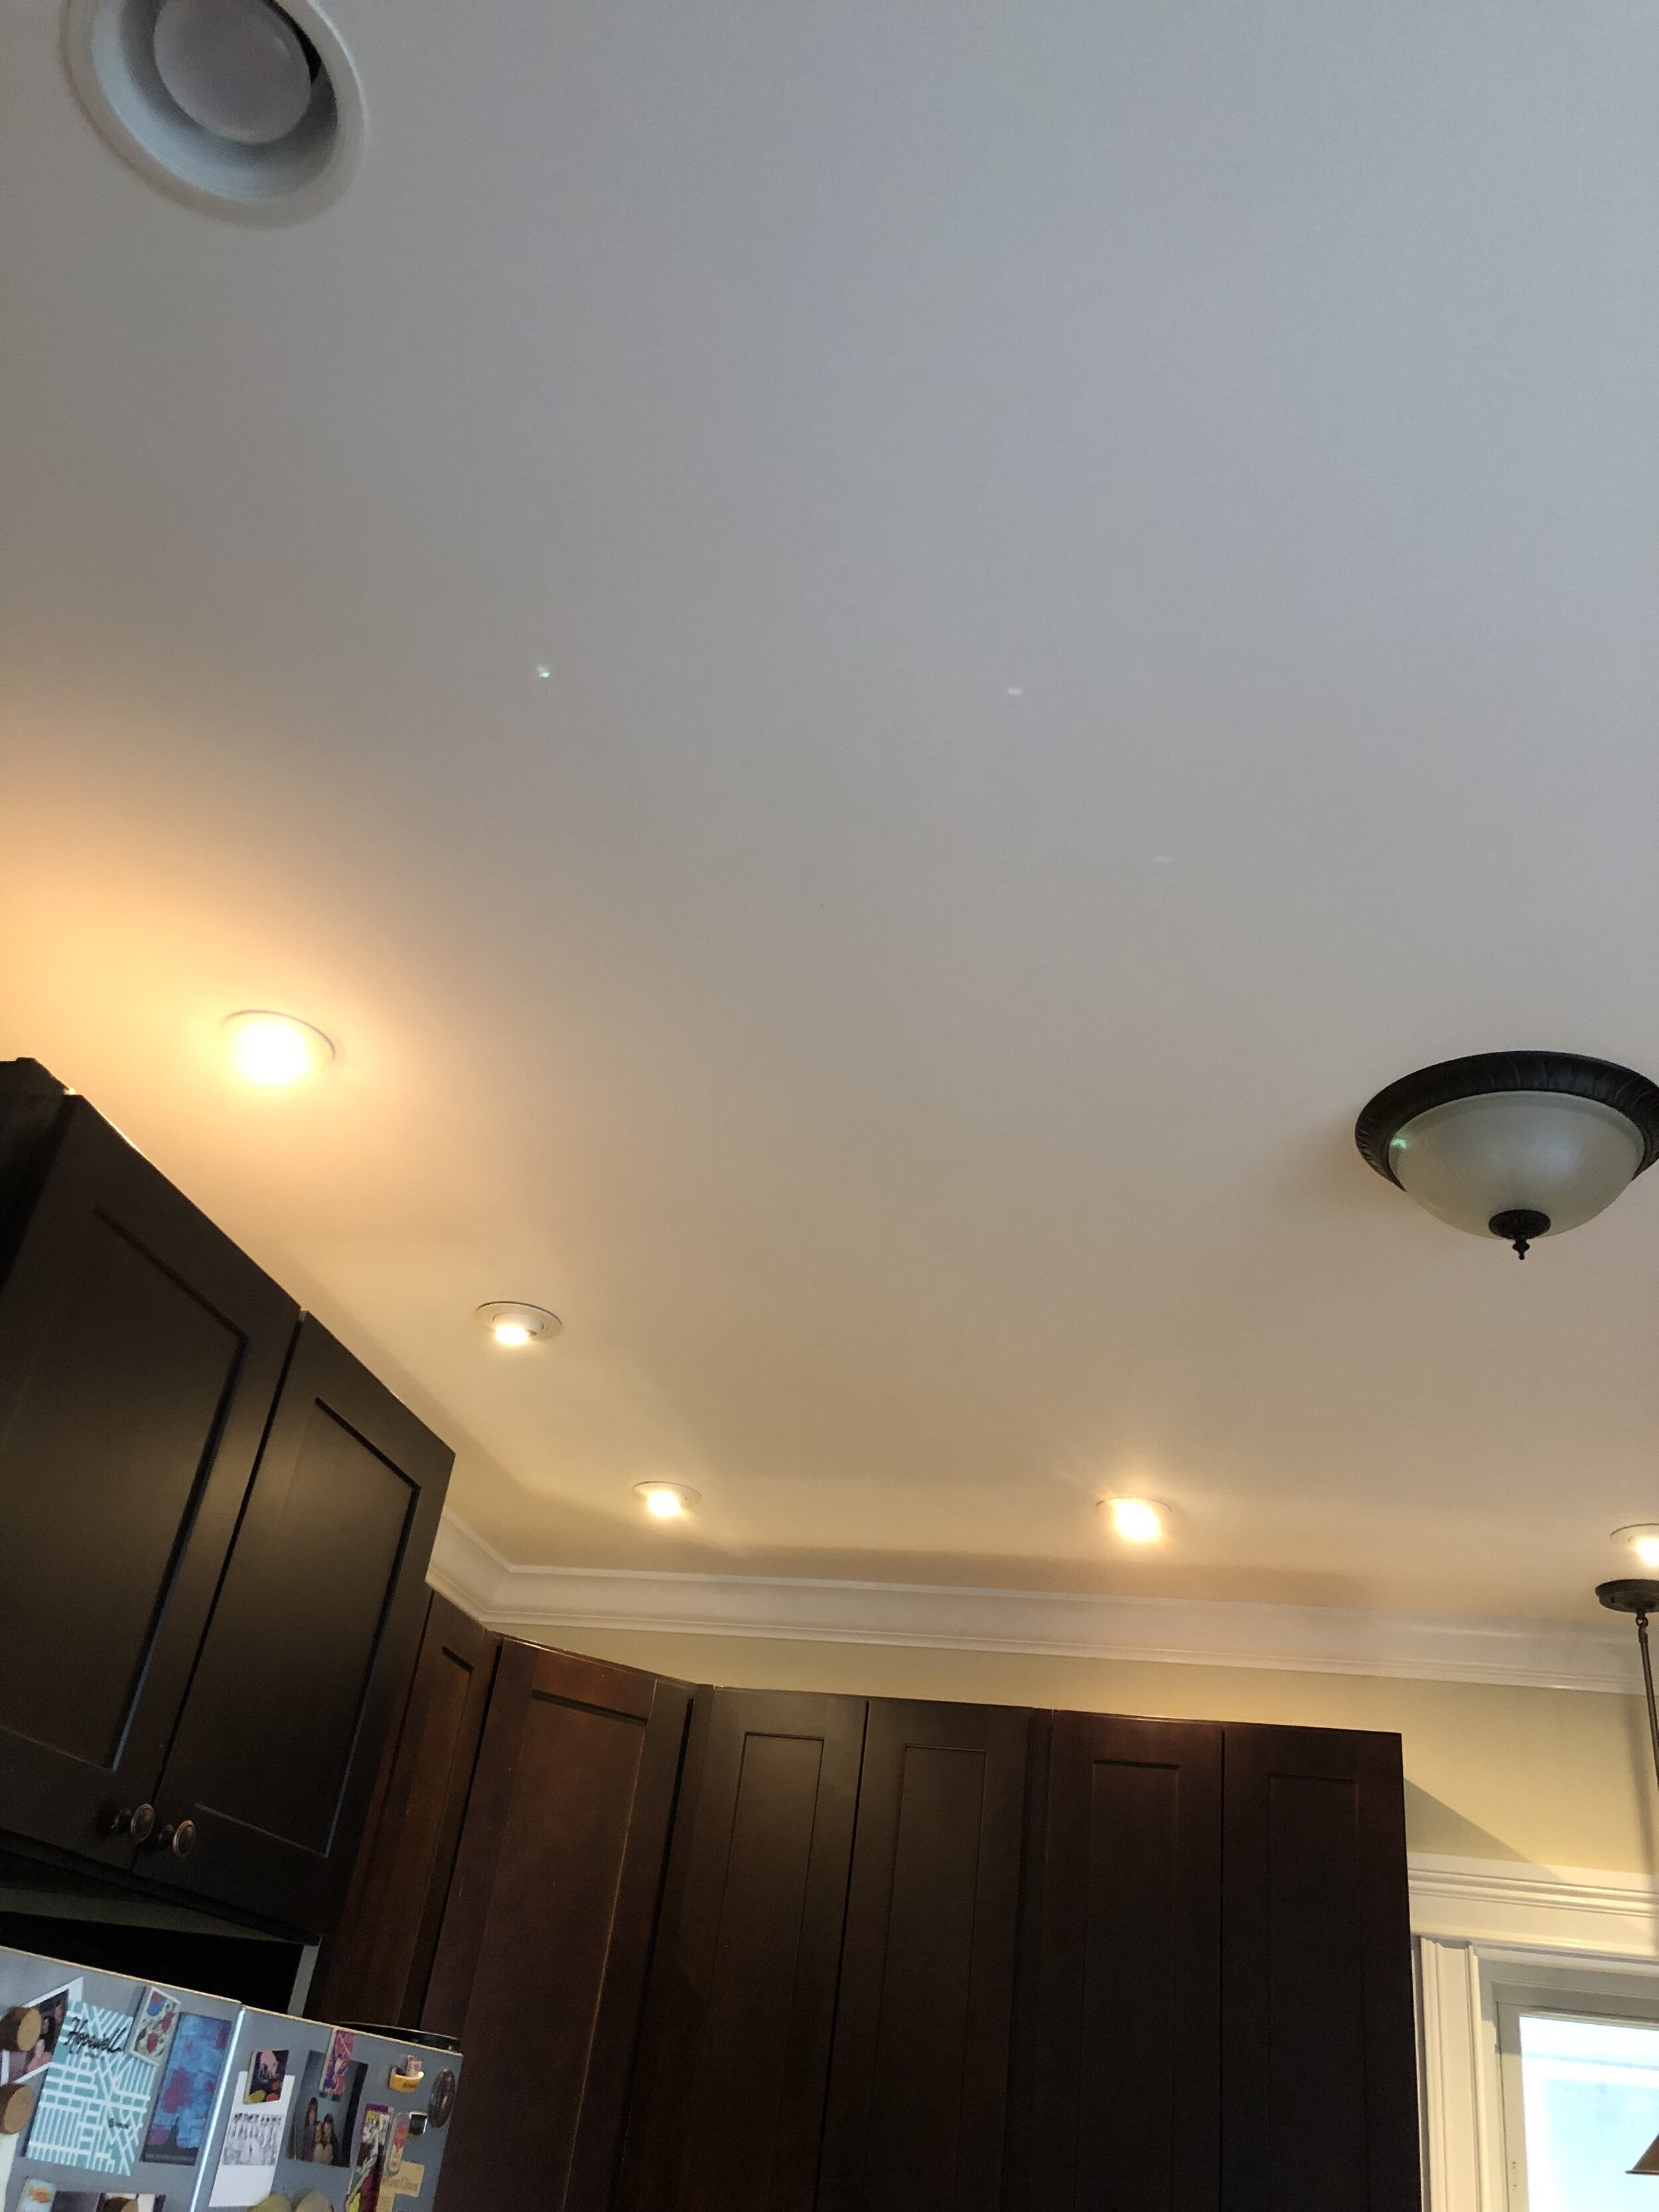 The can lighting was poorly laid out and didn't actually illuminate anything other than the top of the cabinets.